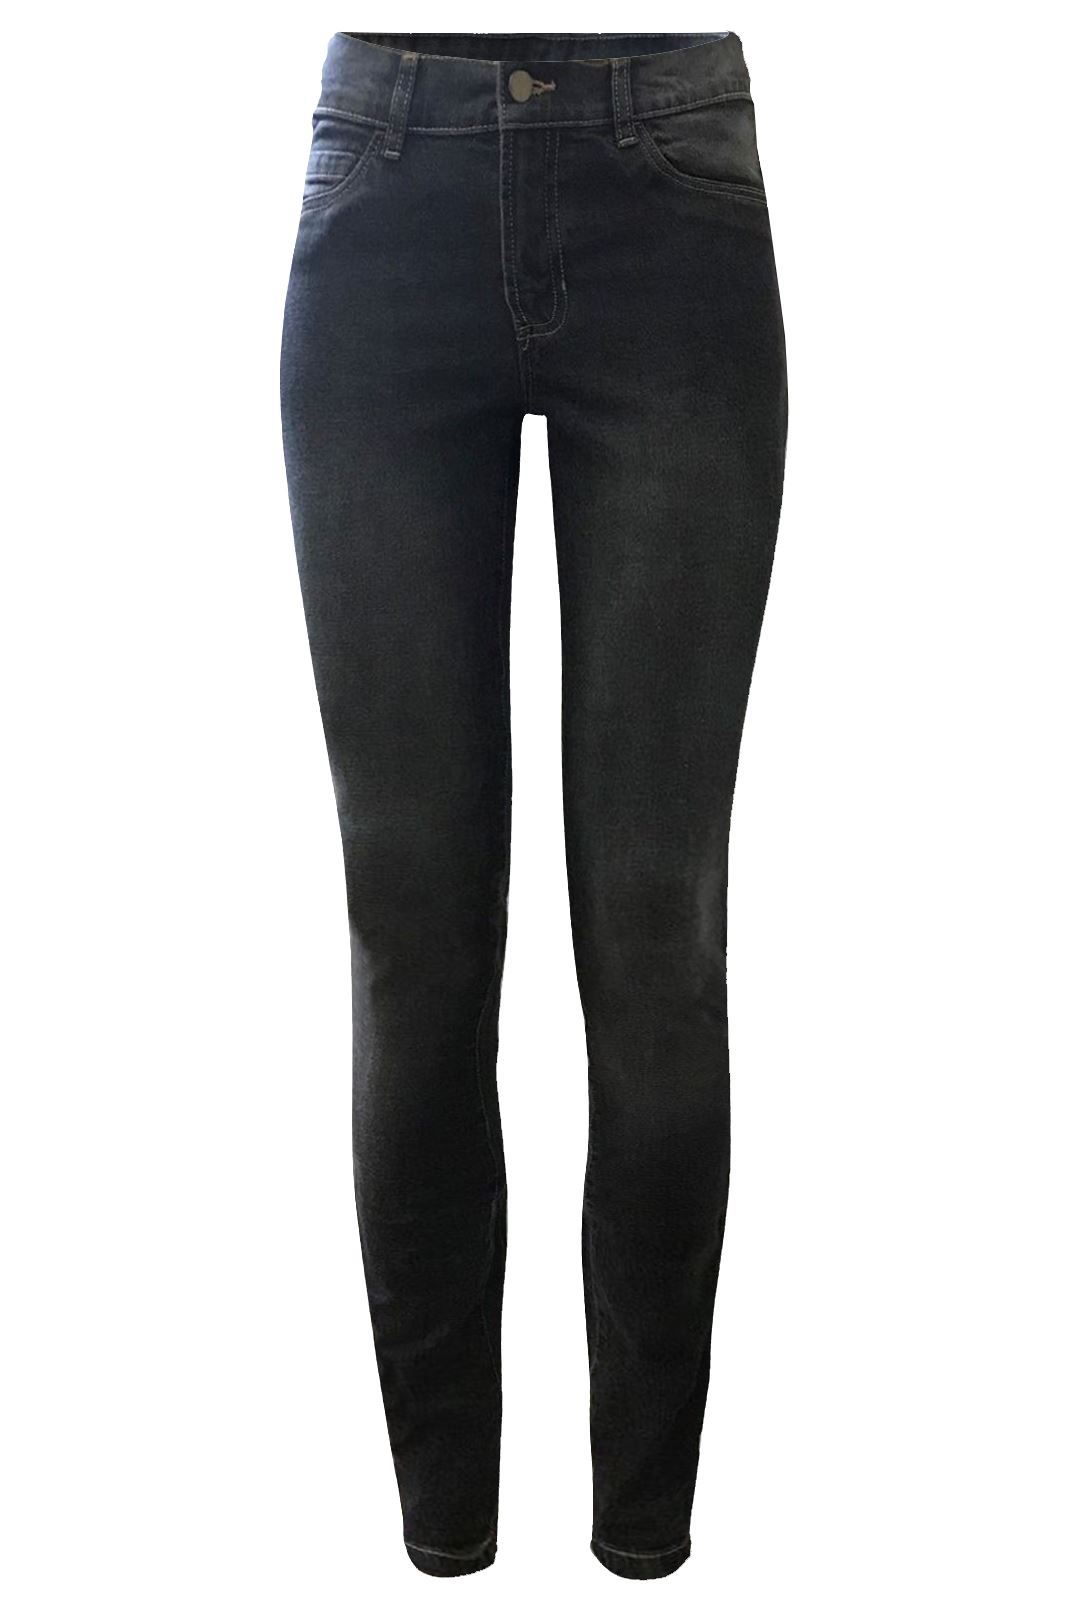 Womens-Ladies-Ex-Zara-Spandex-Stretch-Jeans-Dark-Black-Wash-Denim-Trousers-8-16 thumbnail 5